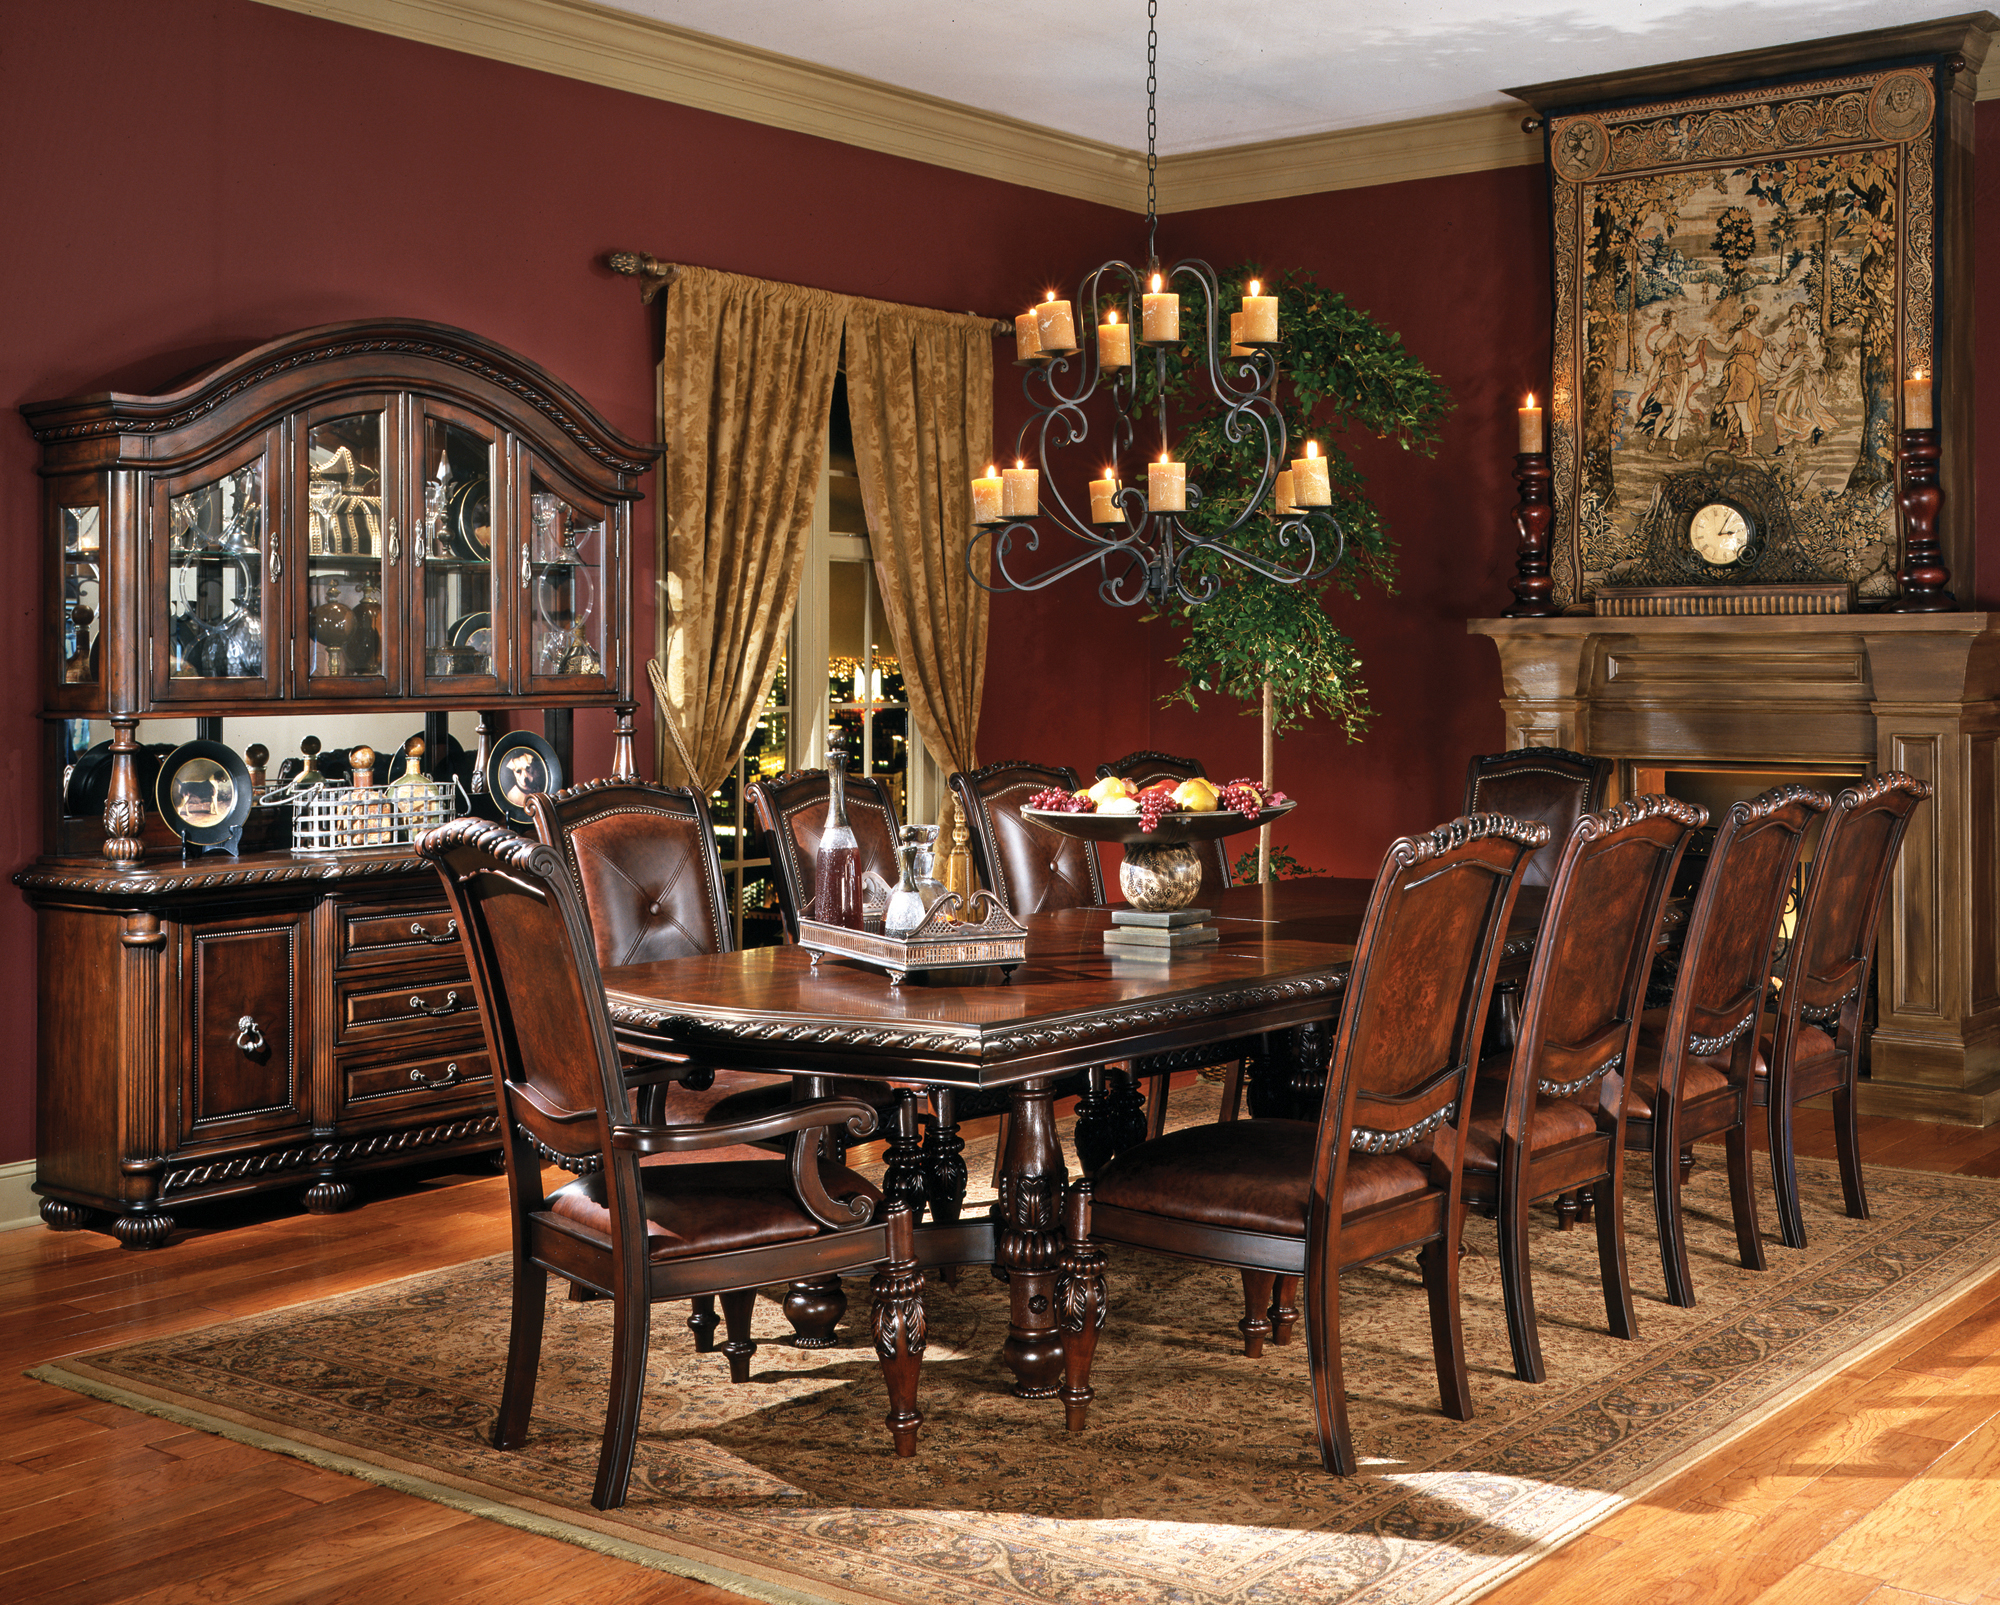 Big Dining Room Table 16 Home Ideas